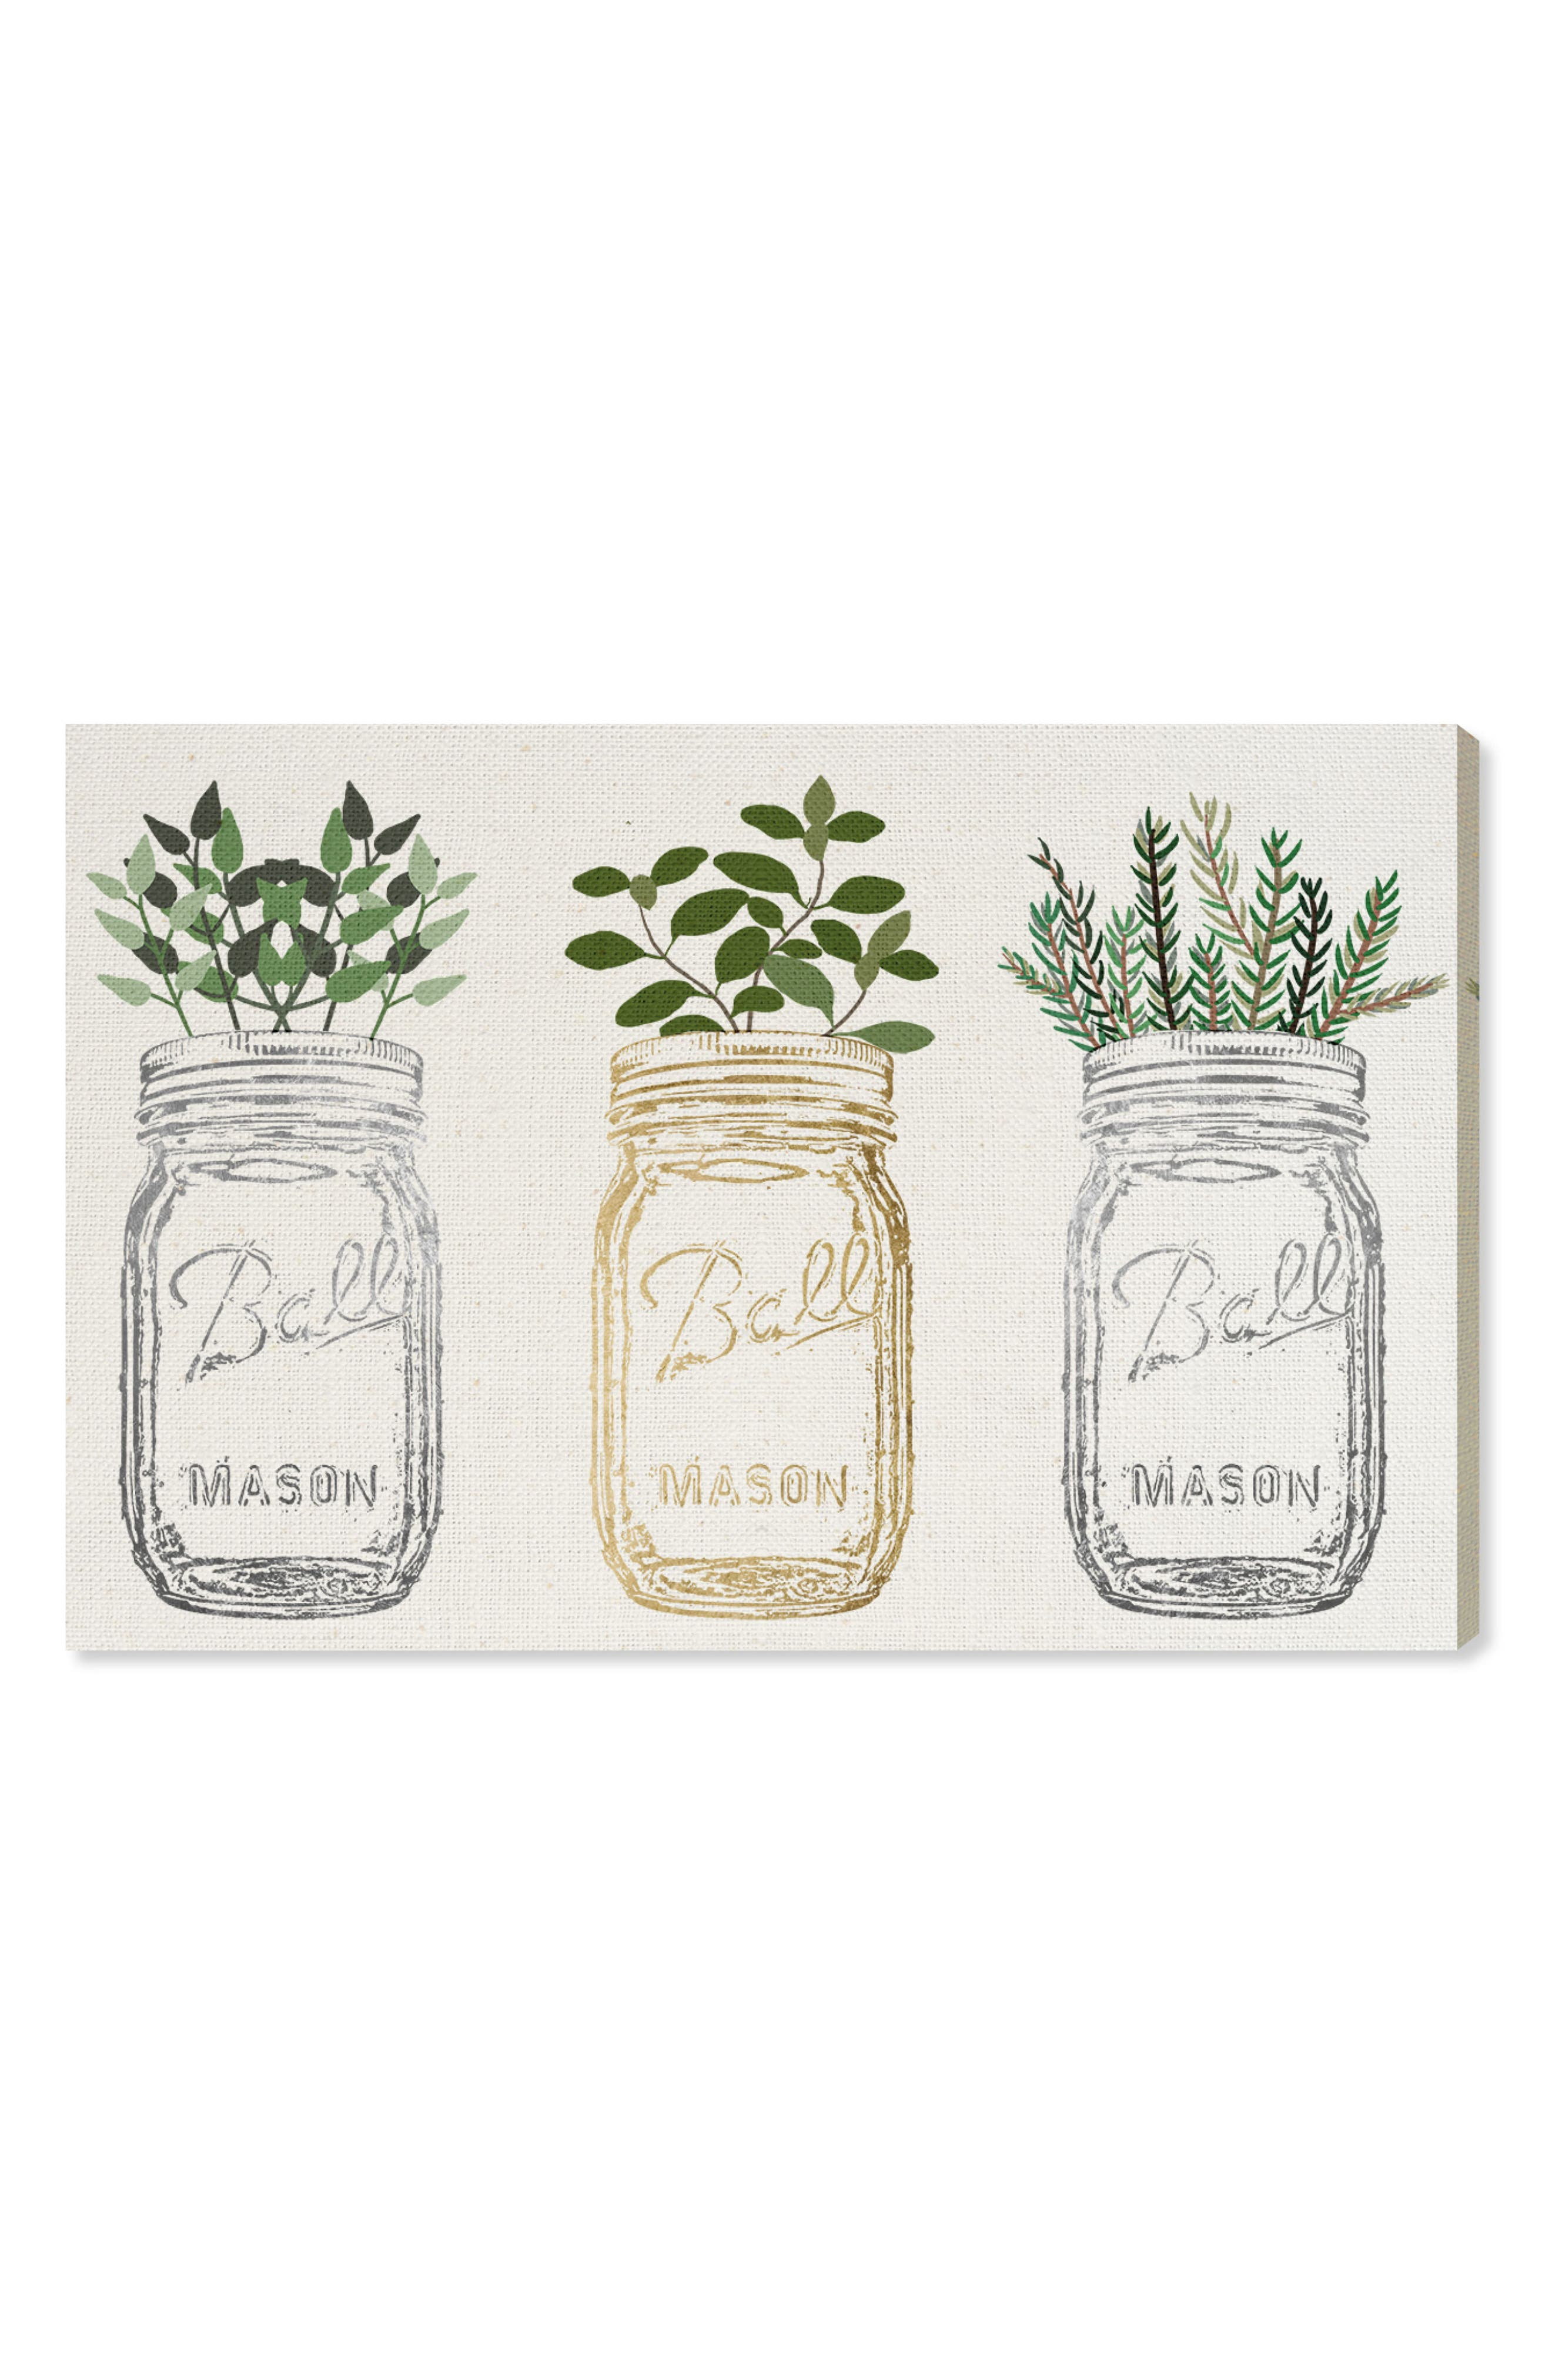 Alternate Image 1 Selected - Oliver Gal Mason Jars & Plants Canvas Wall Art